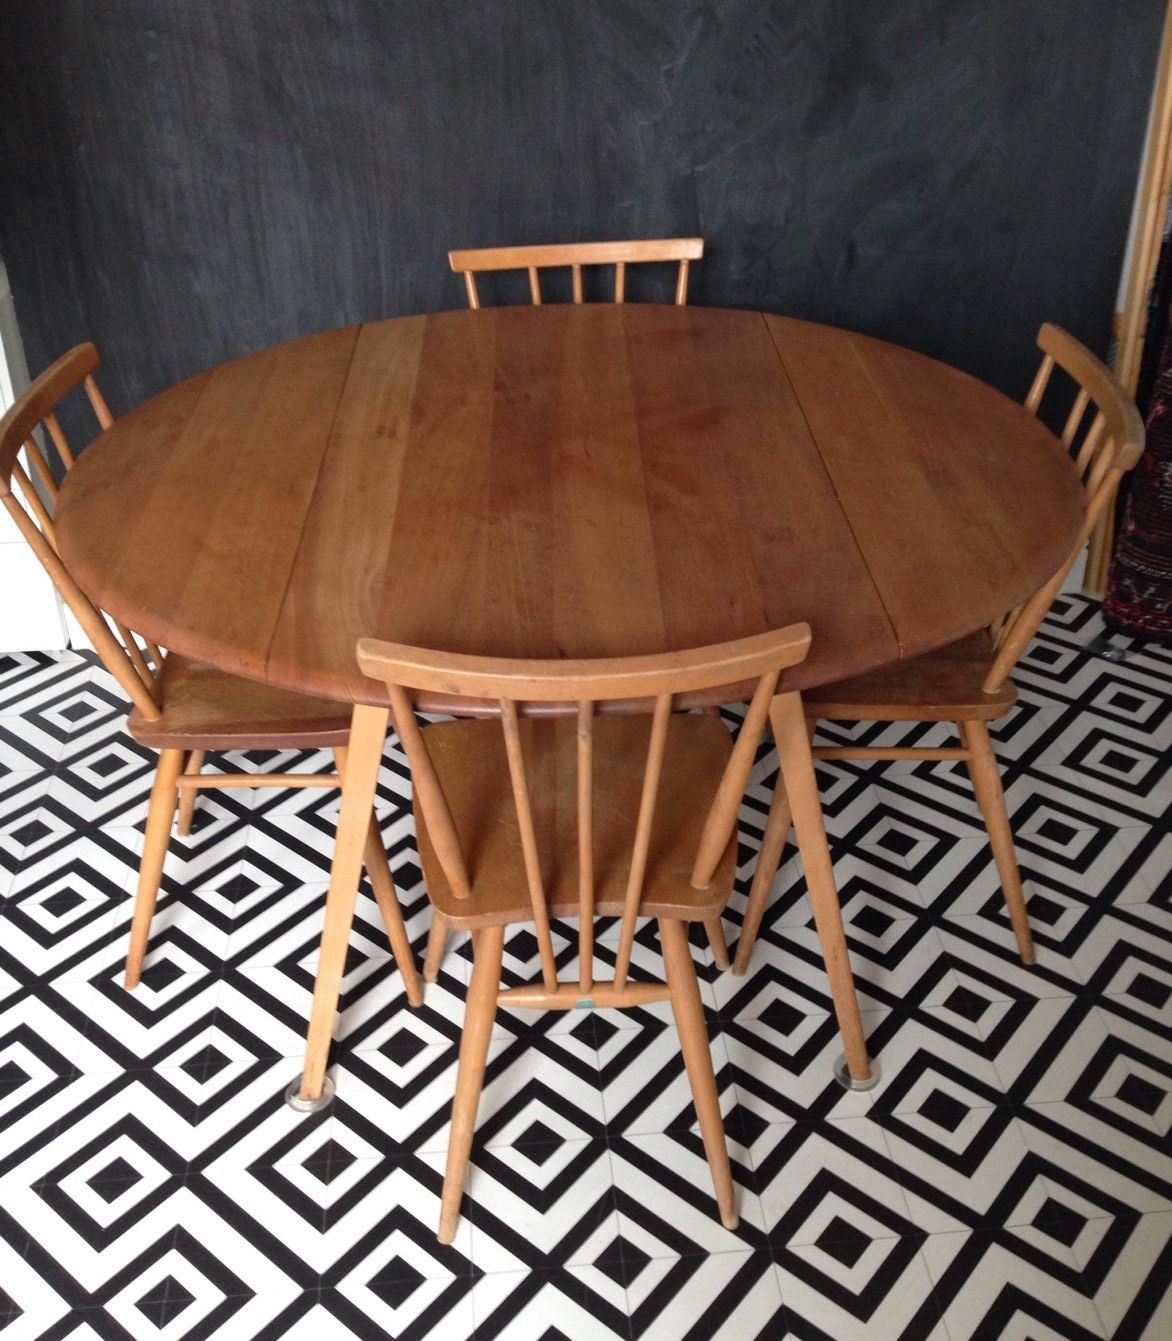 Vintage retro ercol drop leaf round dining kitchen table ebay - Ercol Blonde Round Drop Leaf Dining Table 384 2 Windsor Chairs Vintage Retro